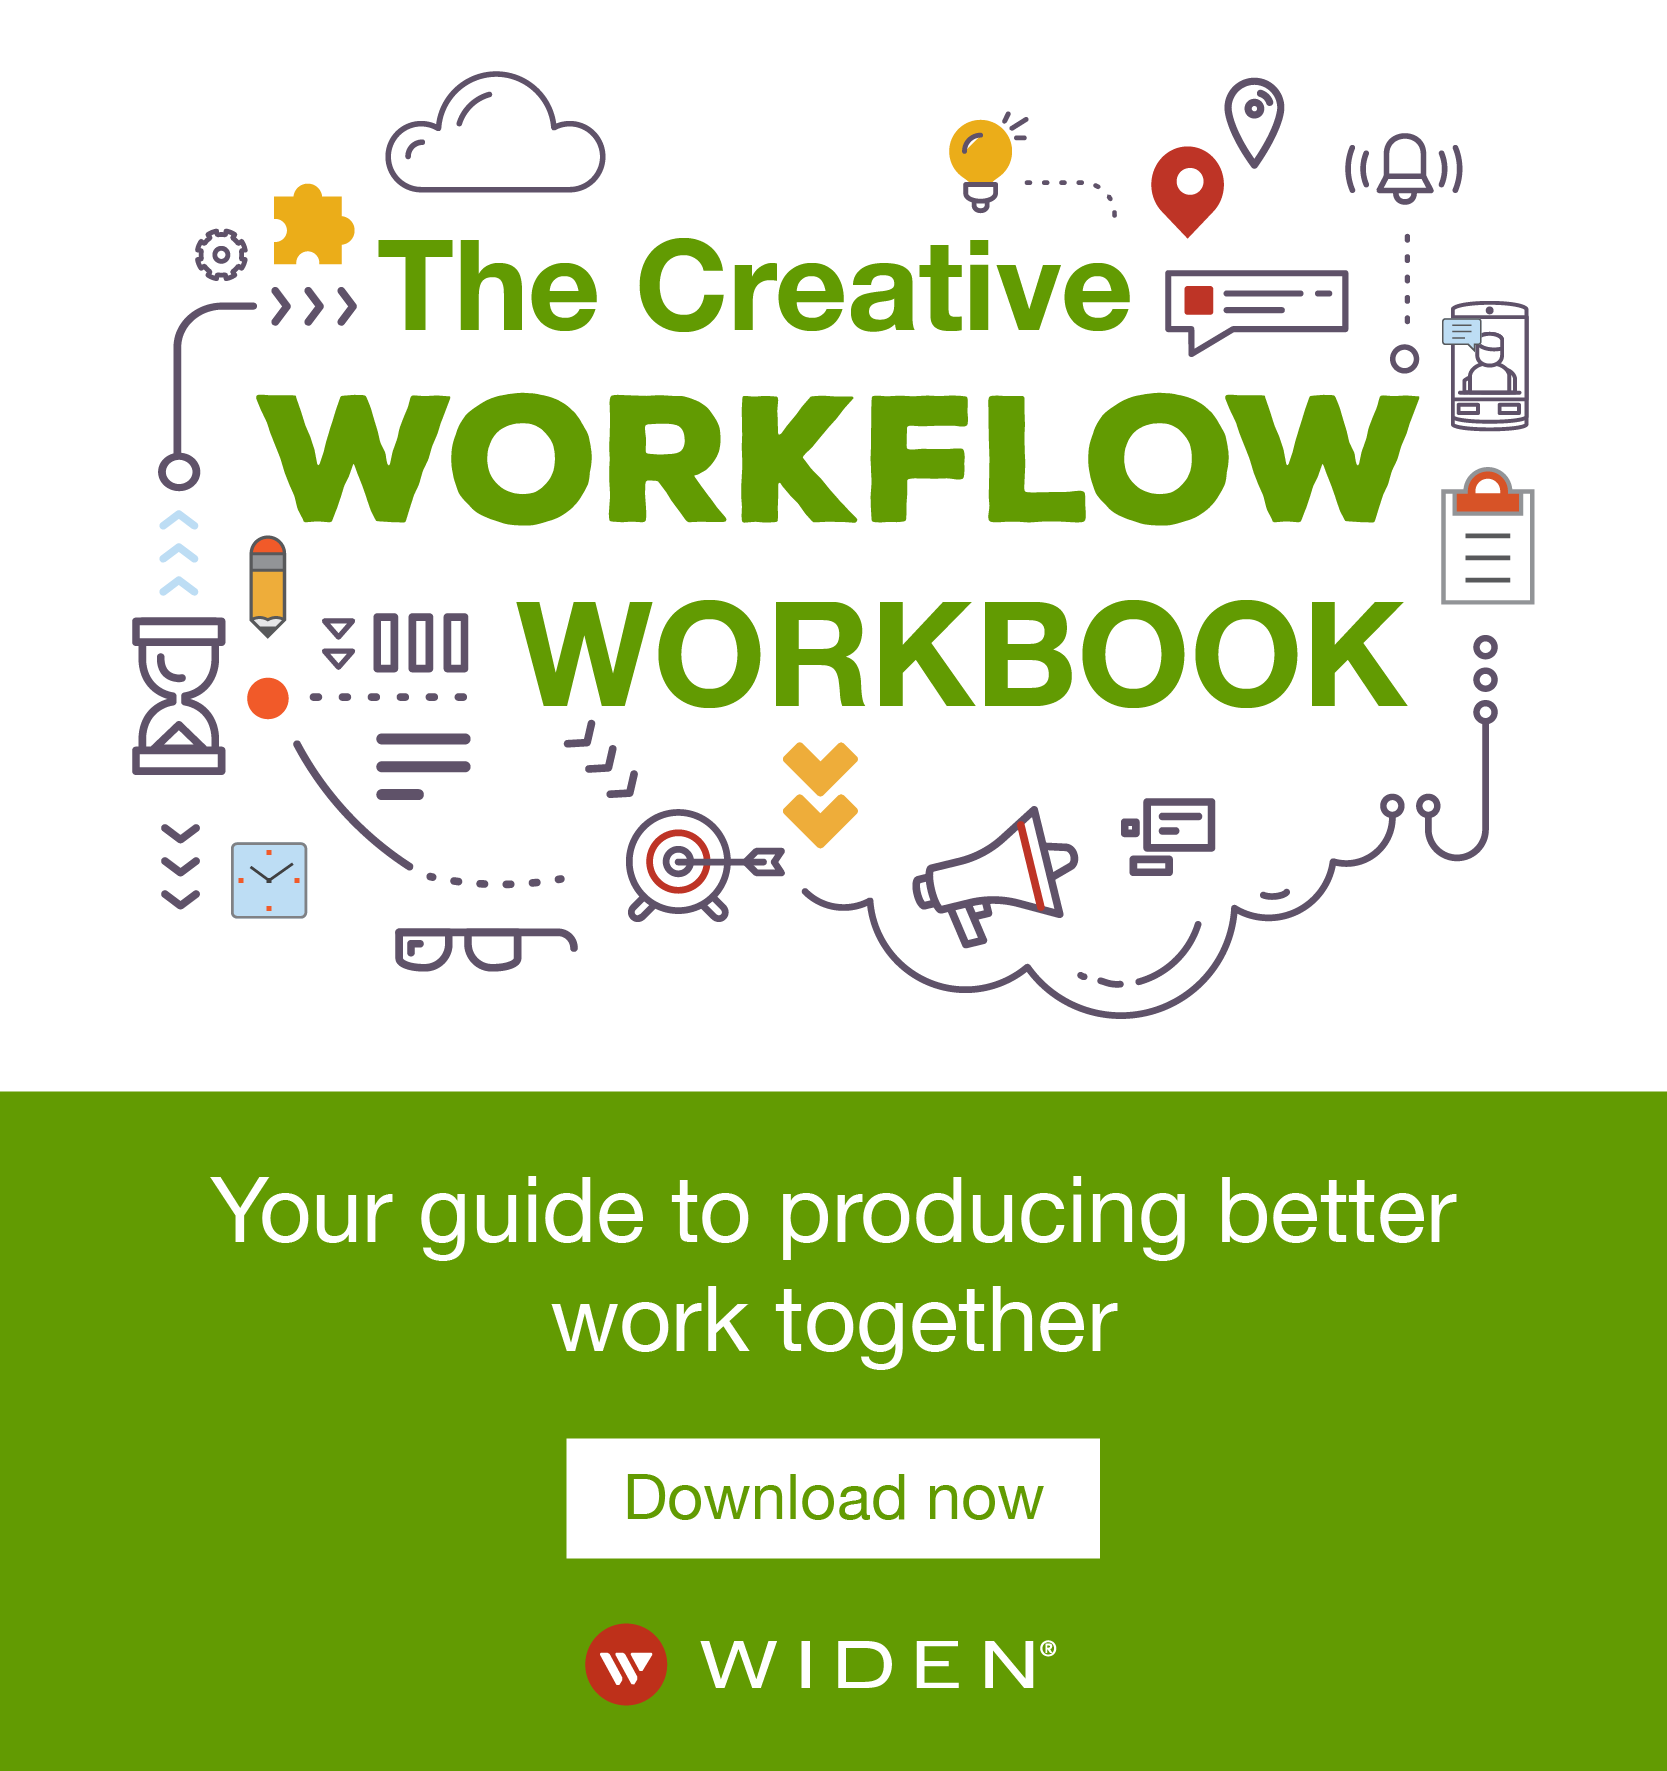 Widen CMI podcast workflow ad